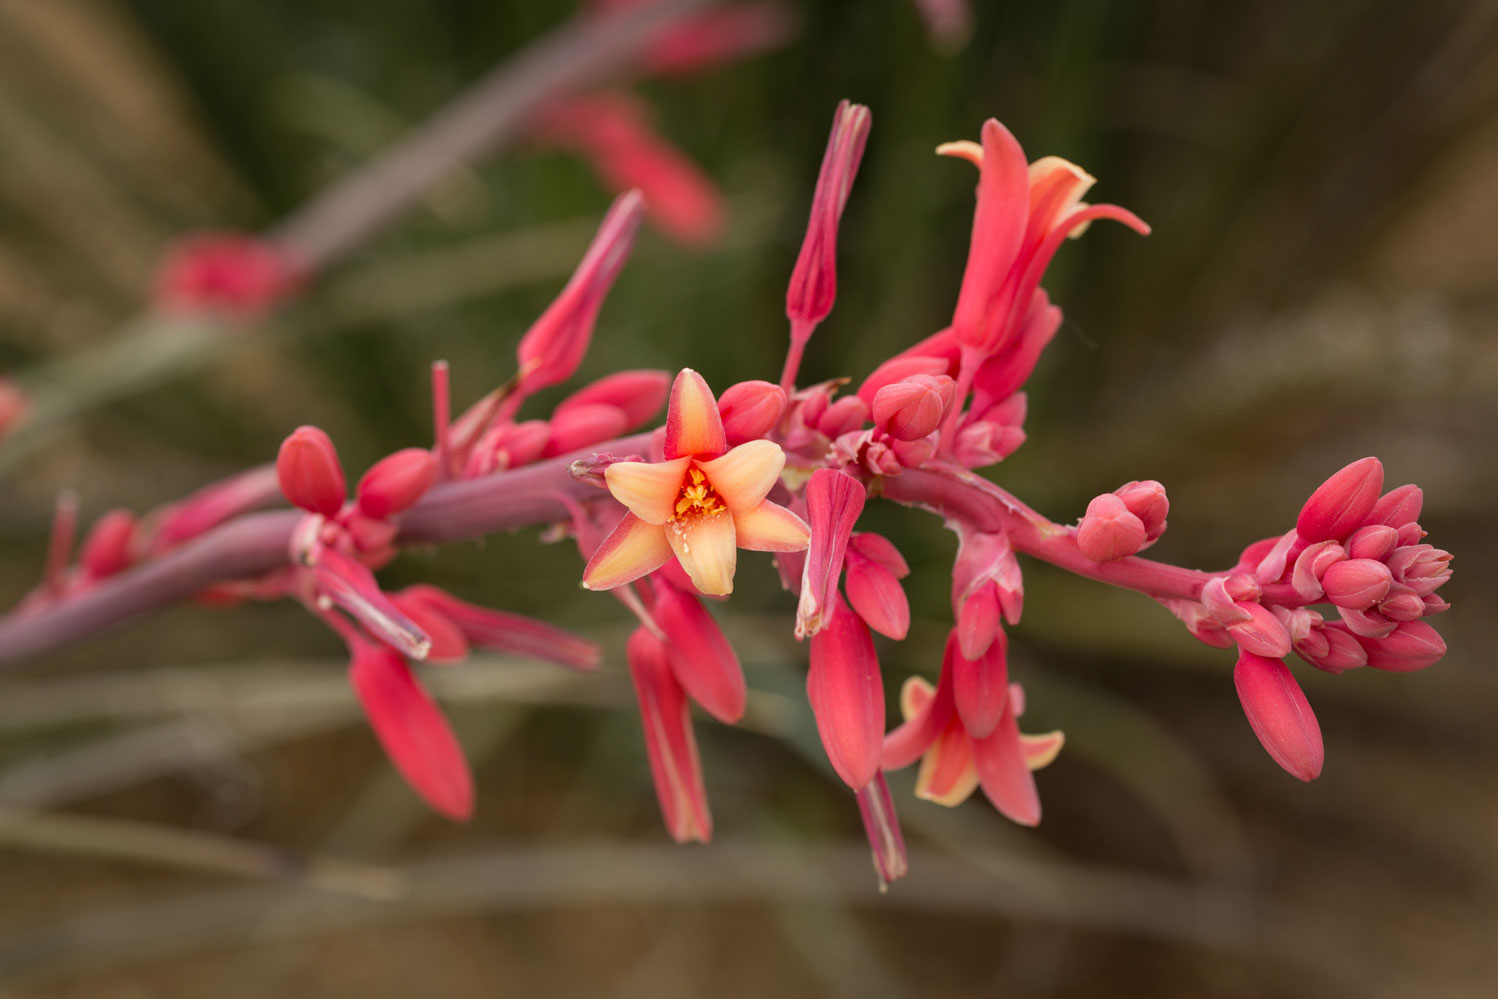 A close-up of bright red Hesperaloe flowers along a stalk.